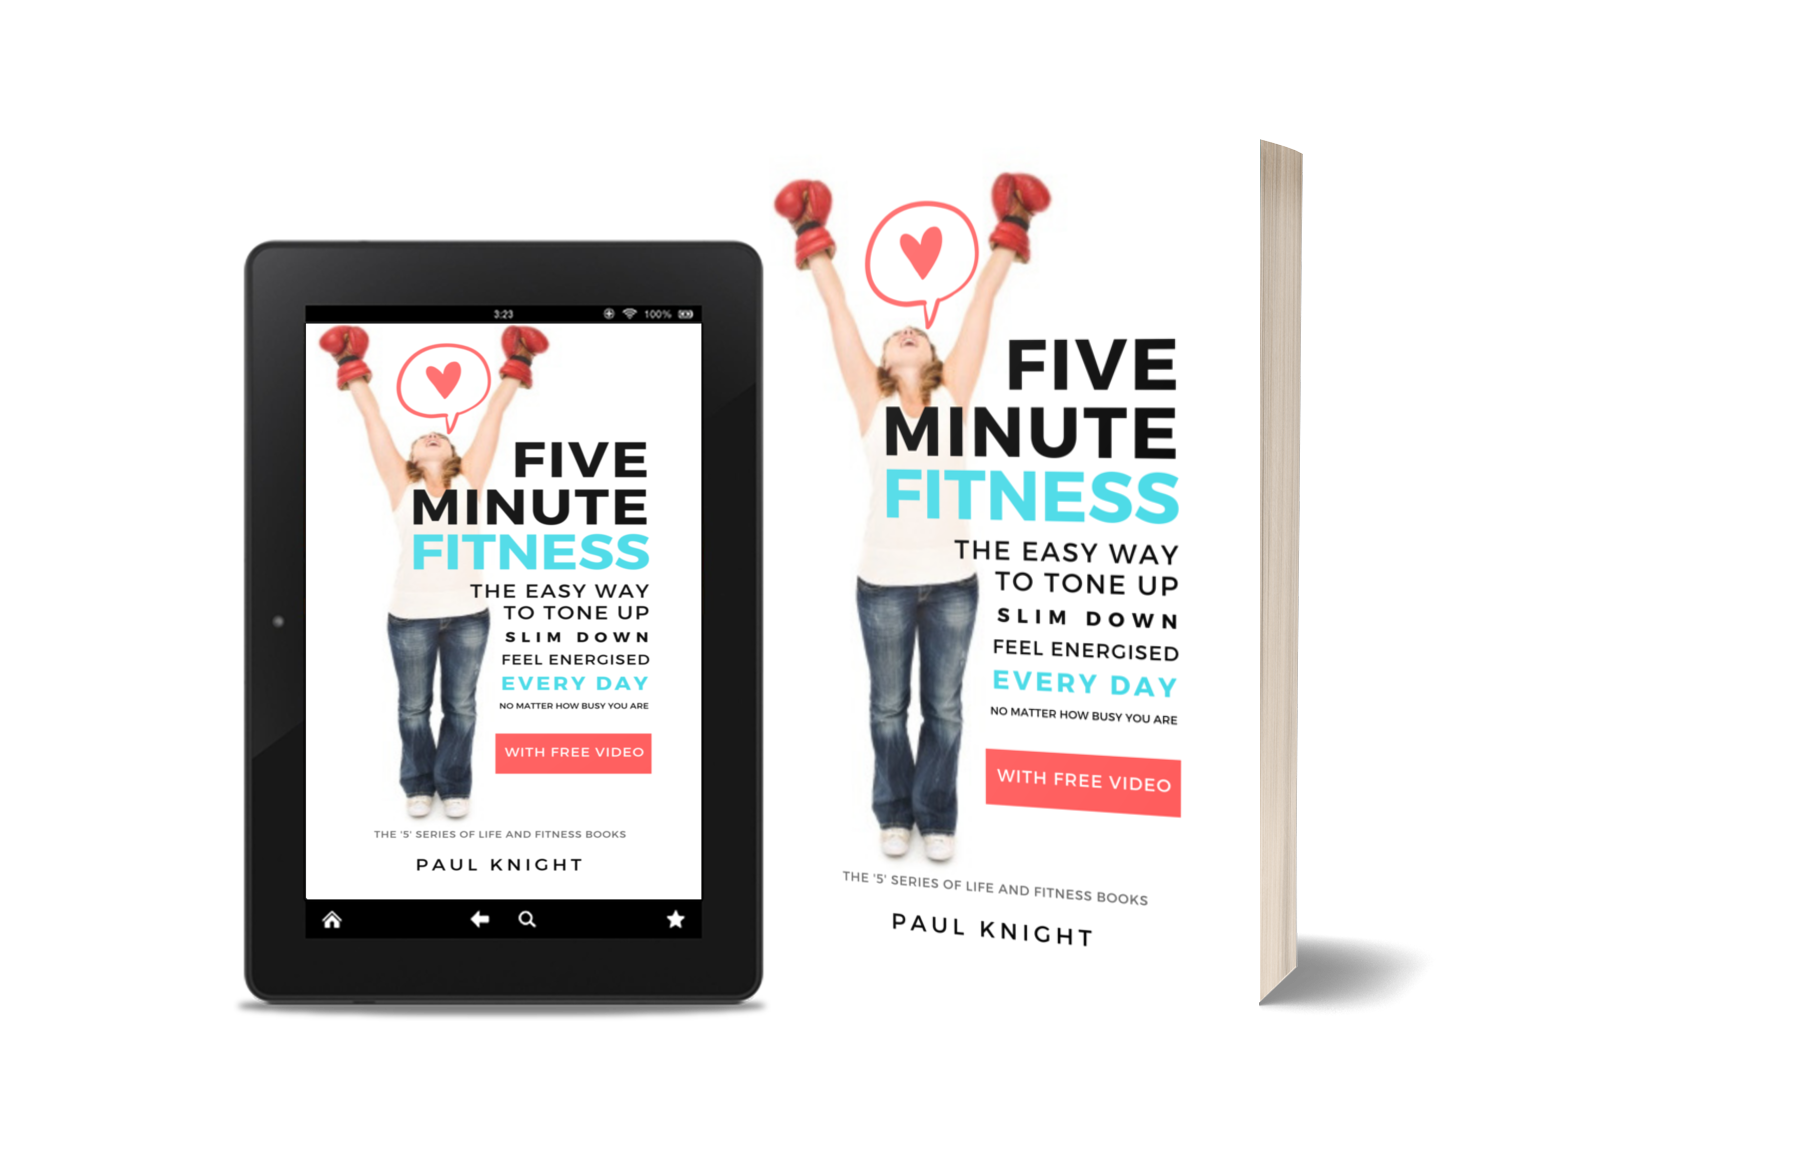 lifestyle fitness weight loss books 5 minute fitness